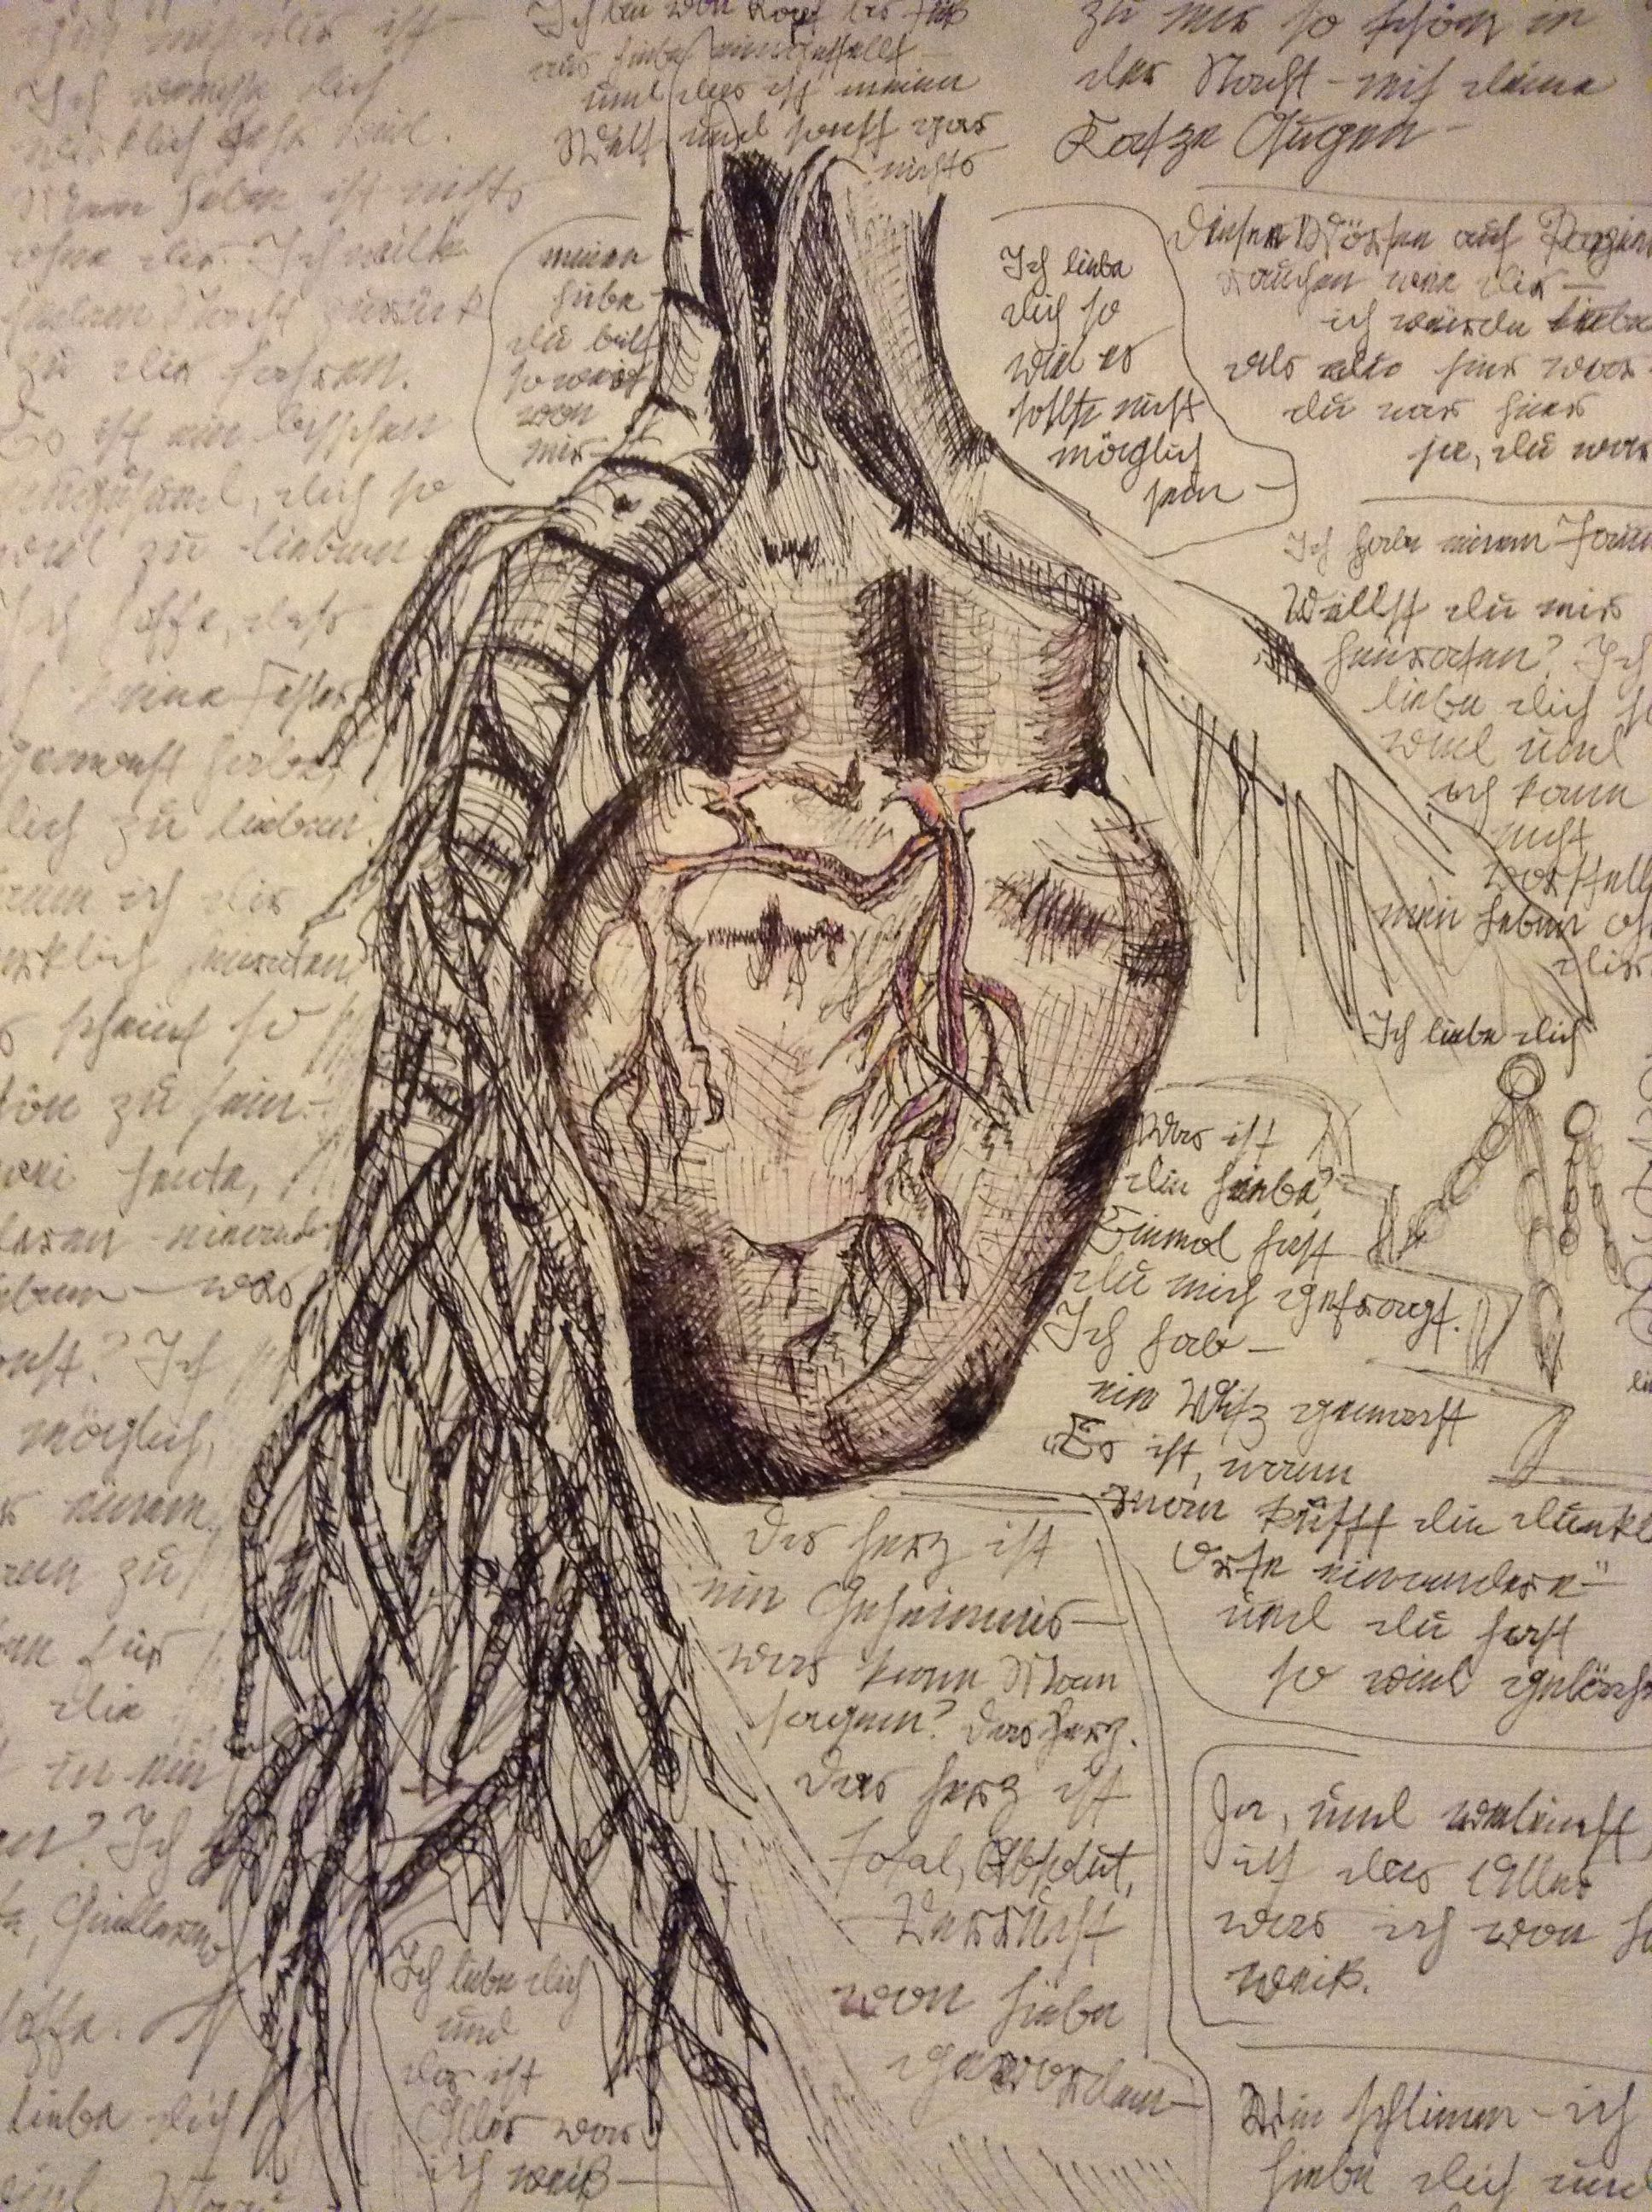 leonardo da vinci drawings heart | da vinci drawings | Pinterest ...